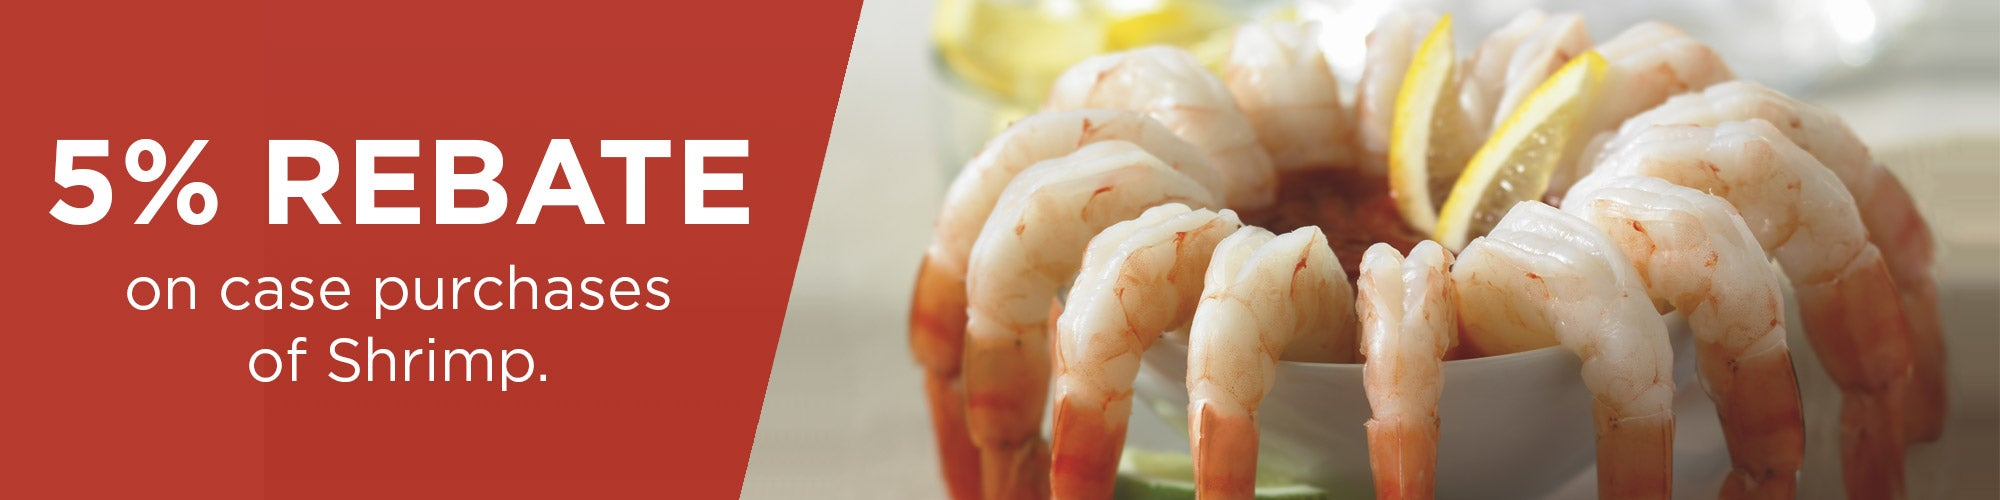 5% Rebate on case purchases of shrimp